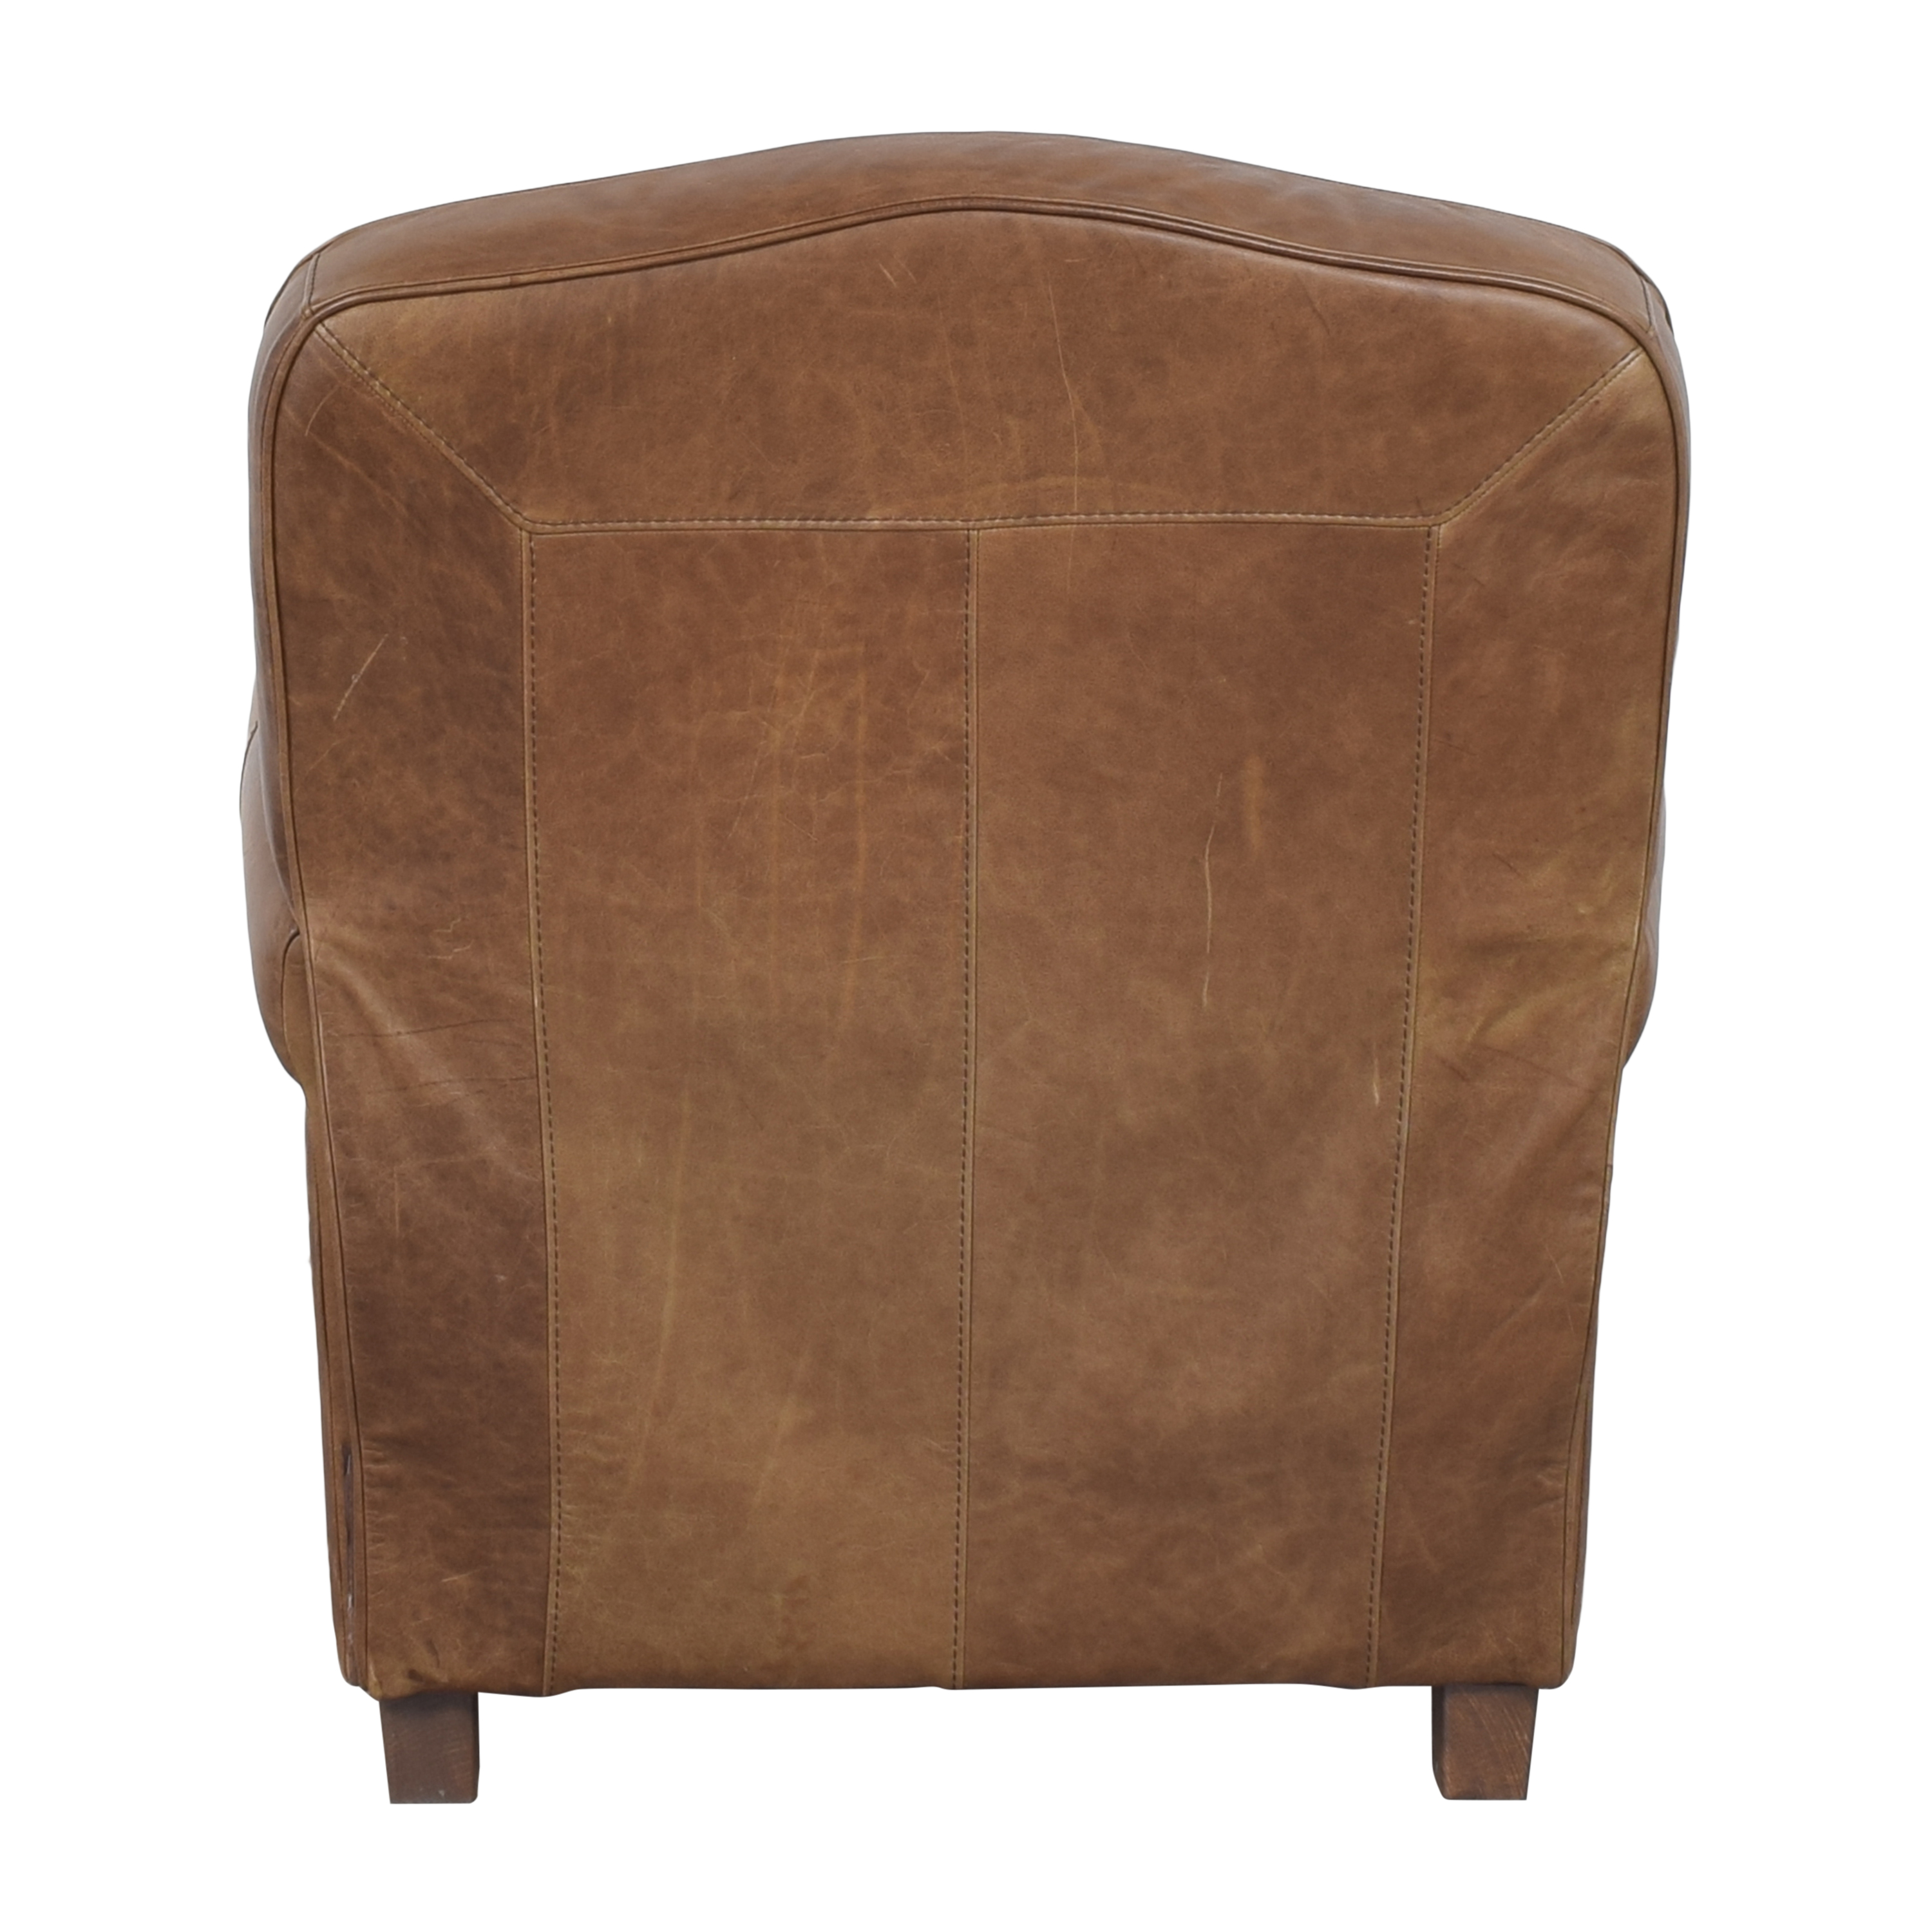 buy Domain Domain Roll Arm Recliner Chair online